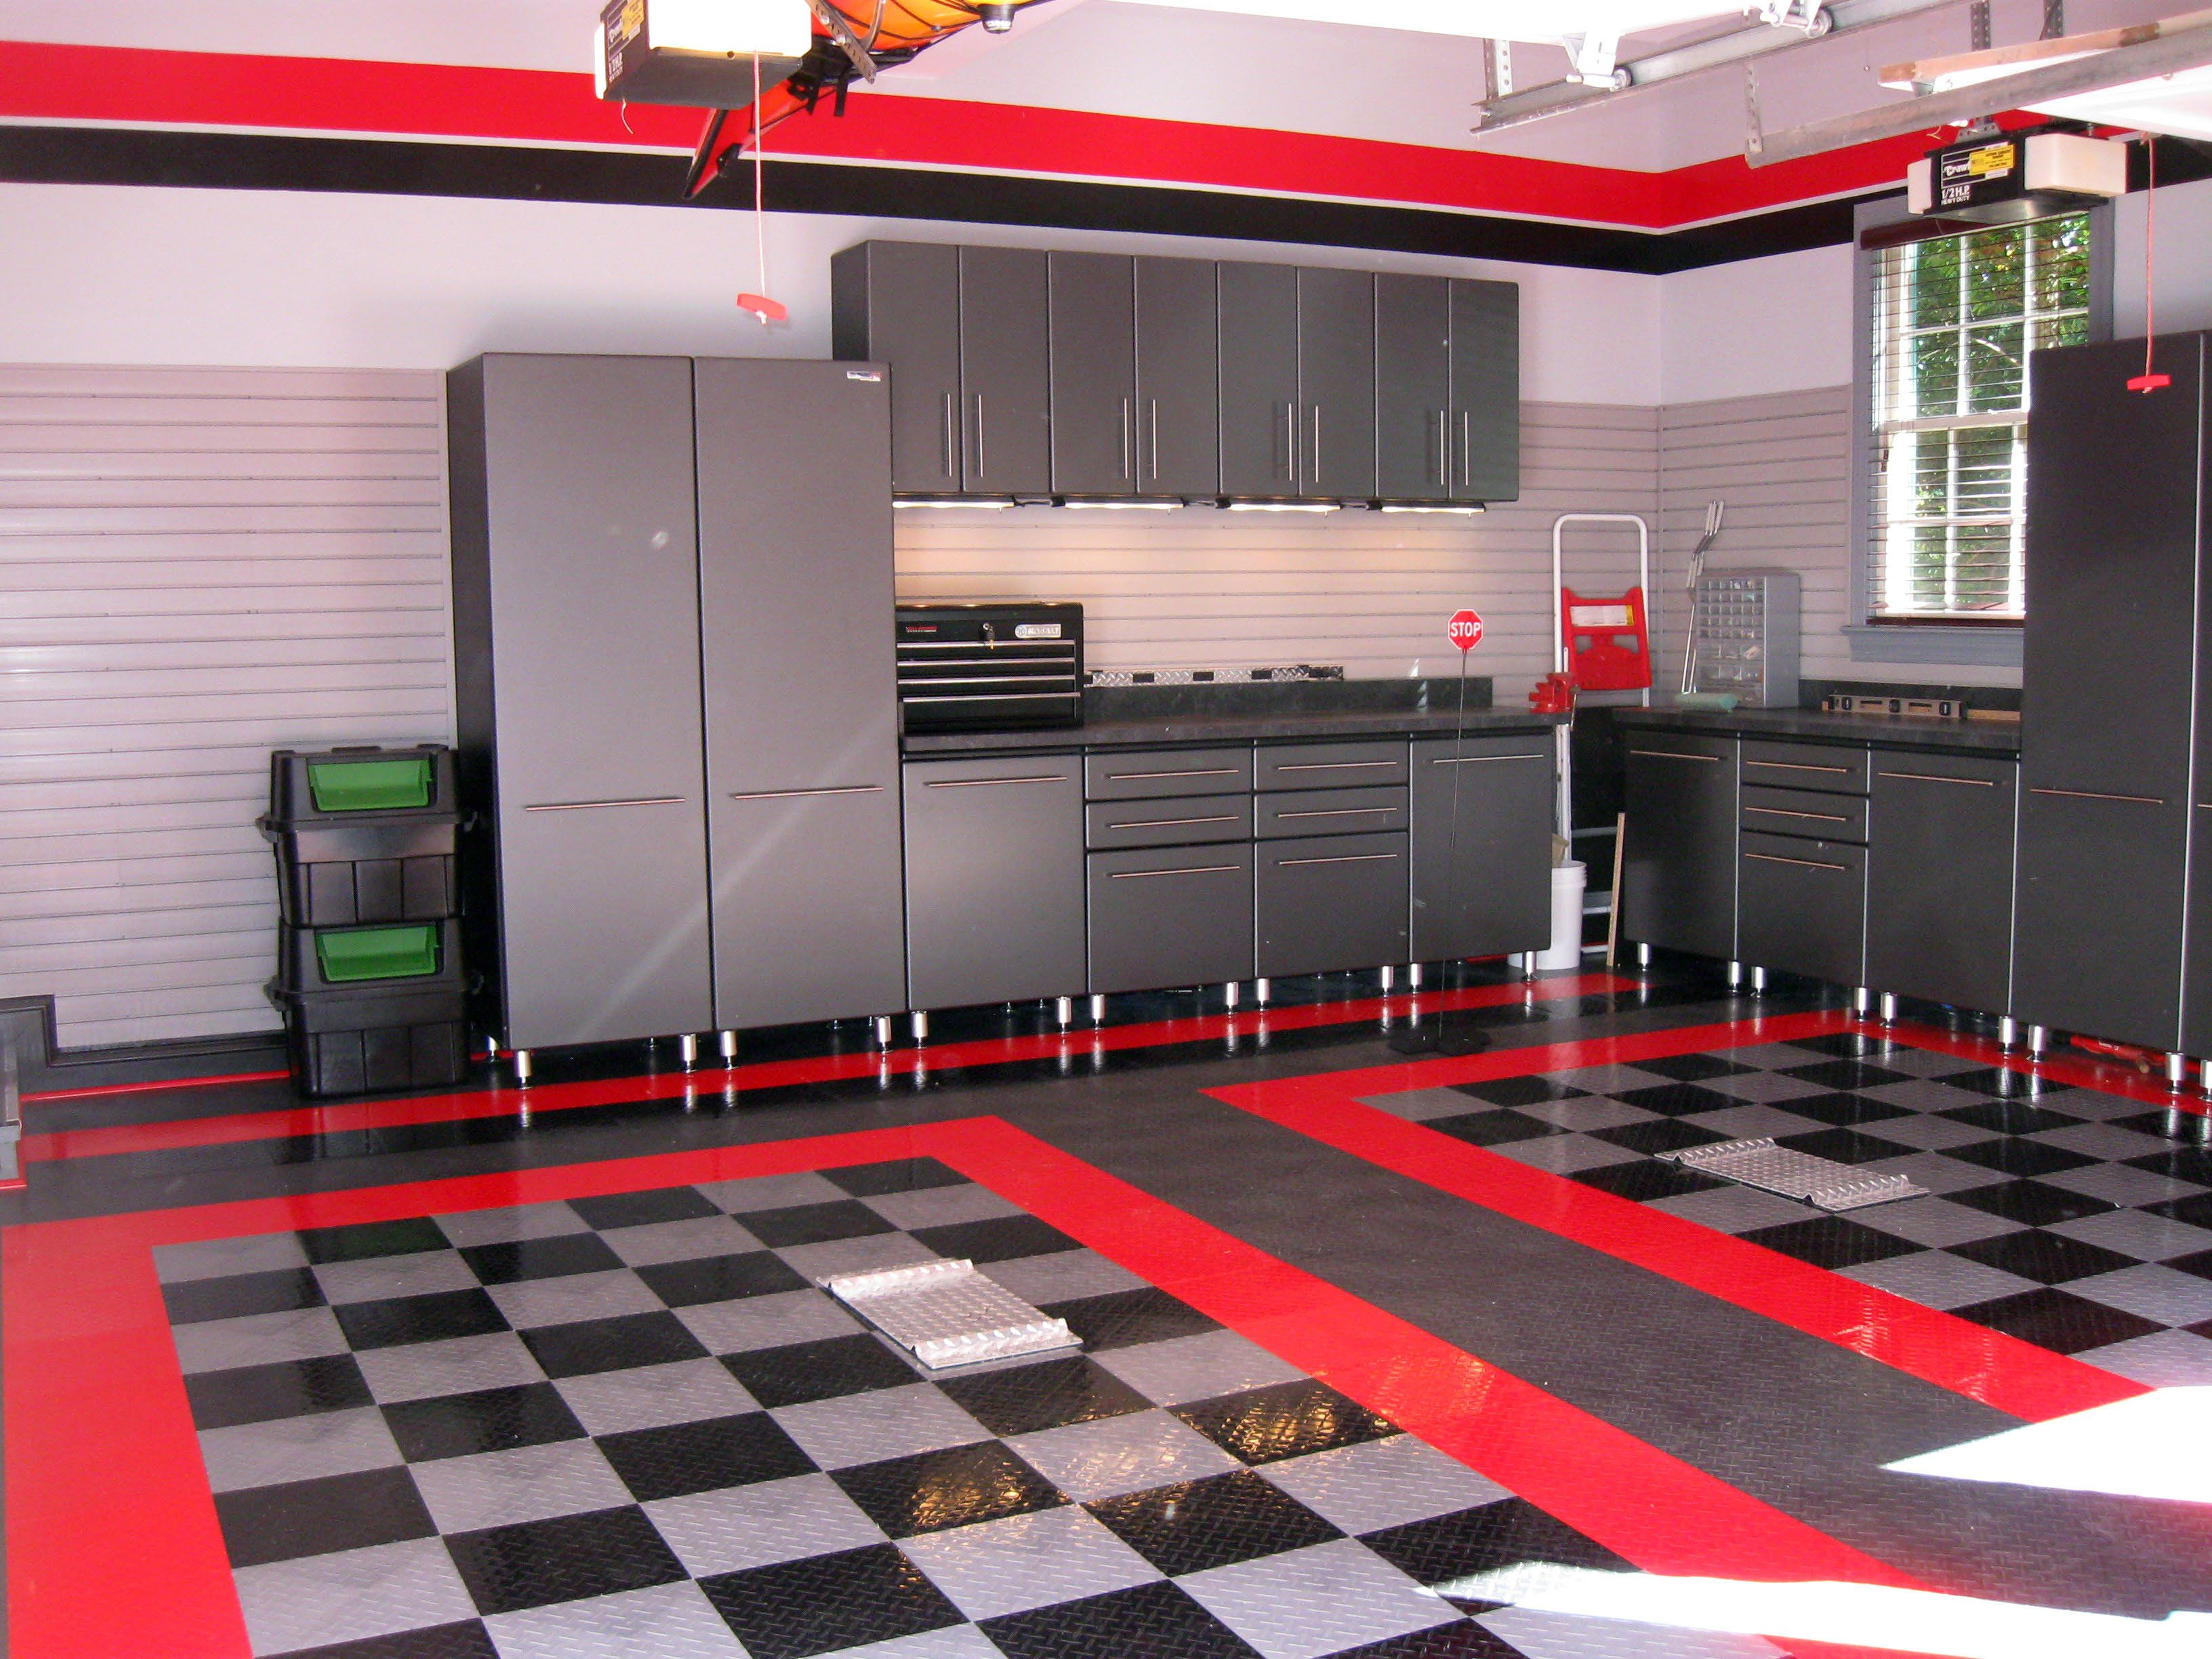 garages custom garages garage interior garage renovation mancave ideas